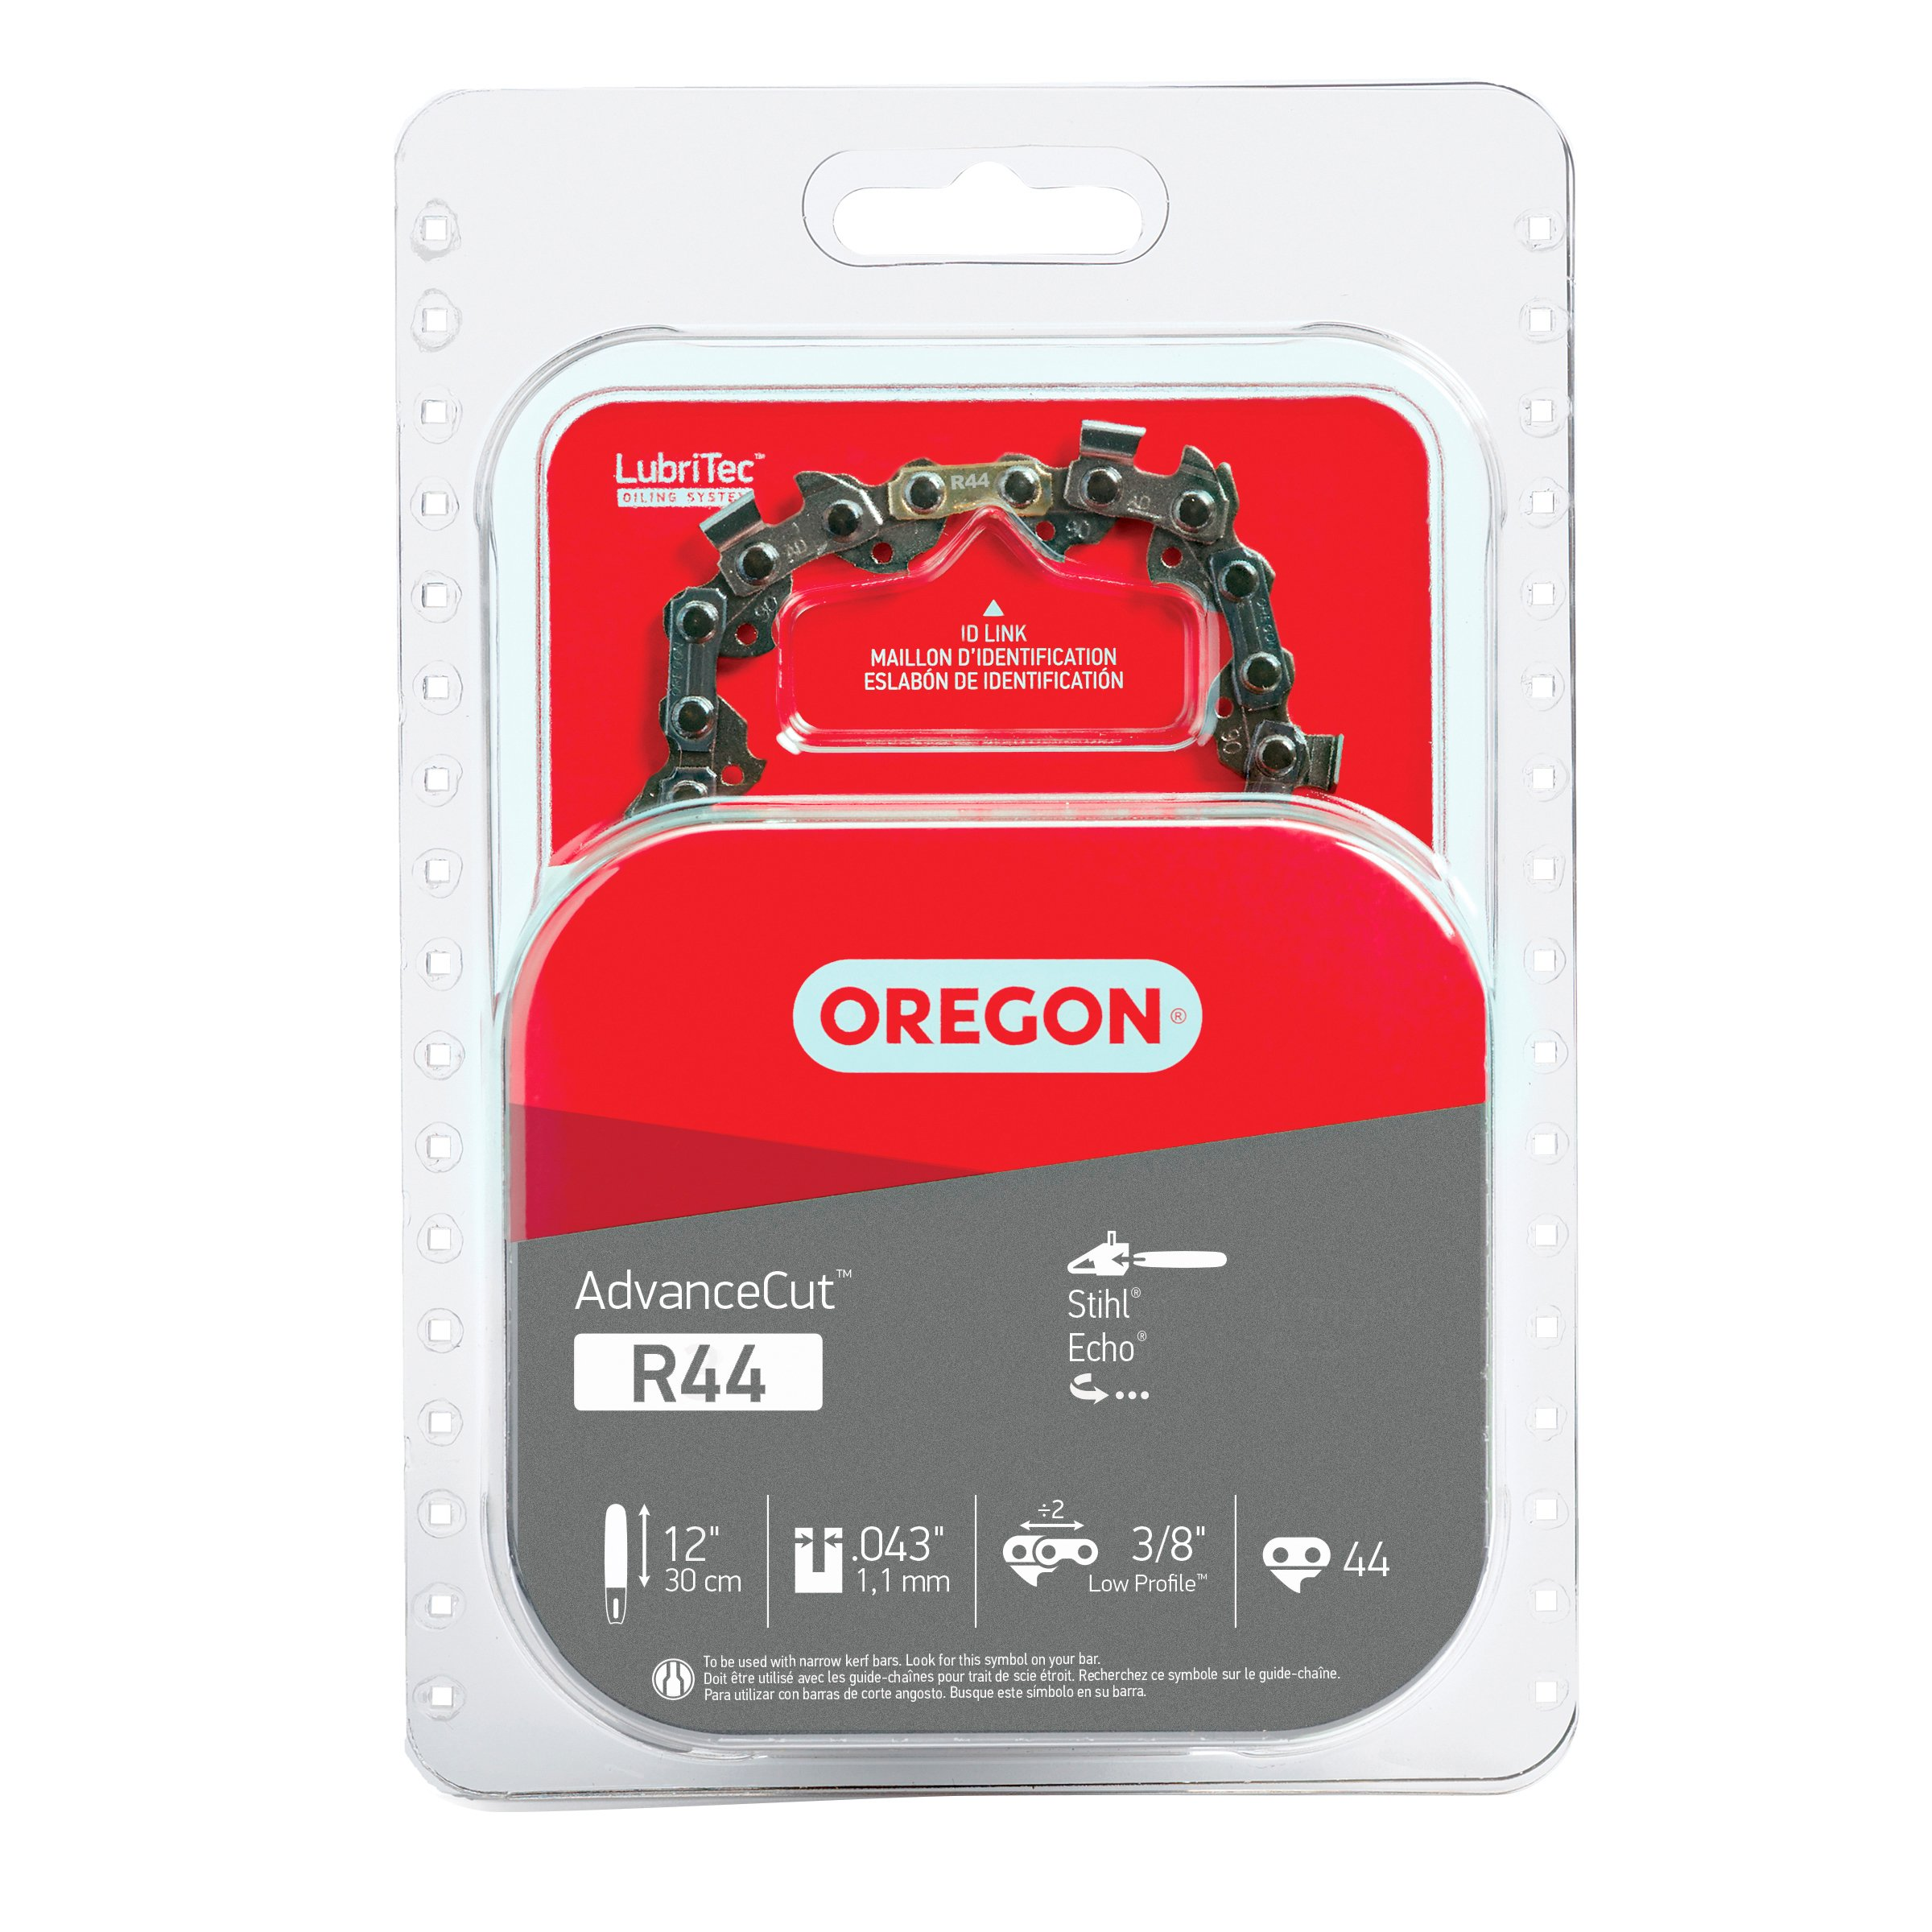 Oregon R44 AdvanceCut 12-Inch Chainsaw Chain Fits Stihl, Echo by Oregon